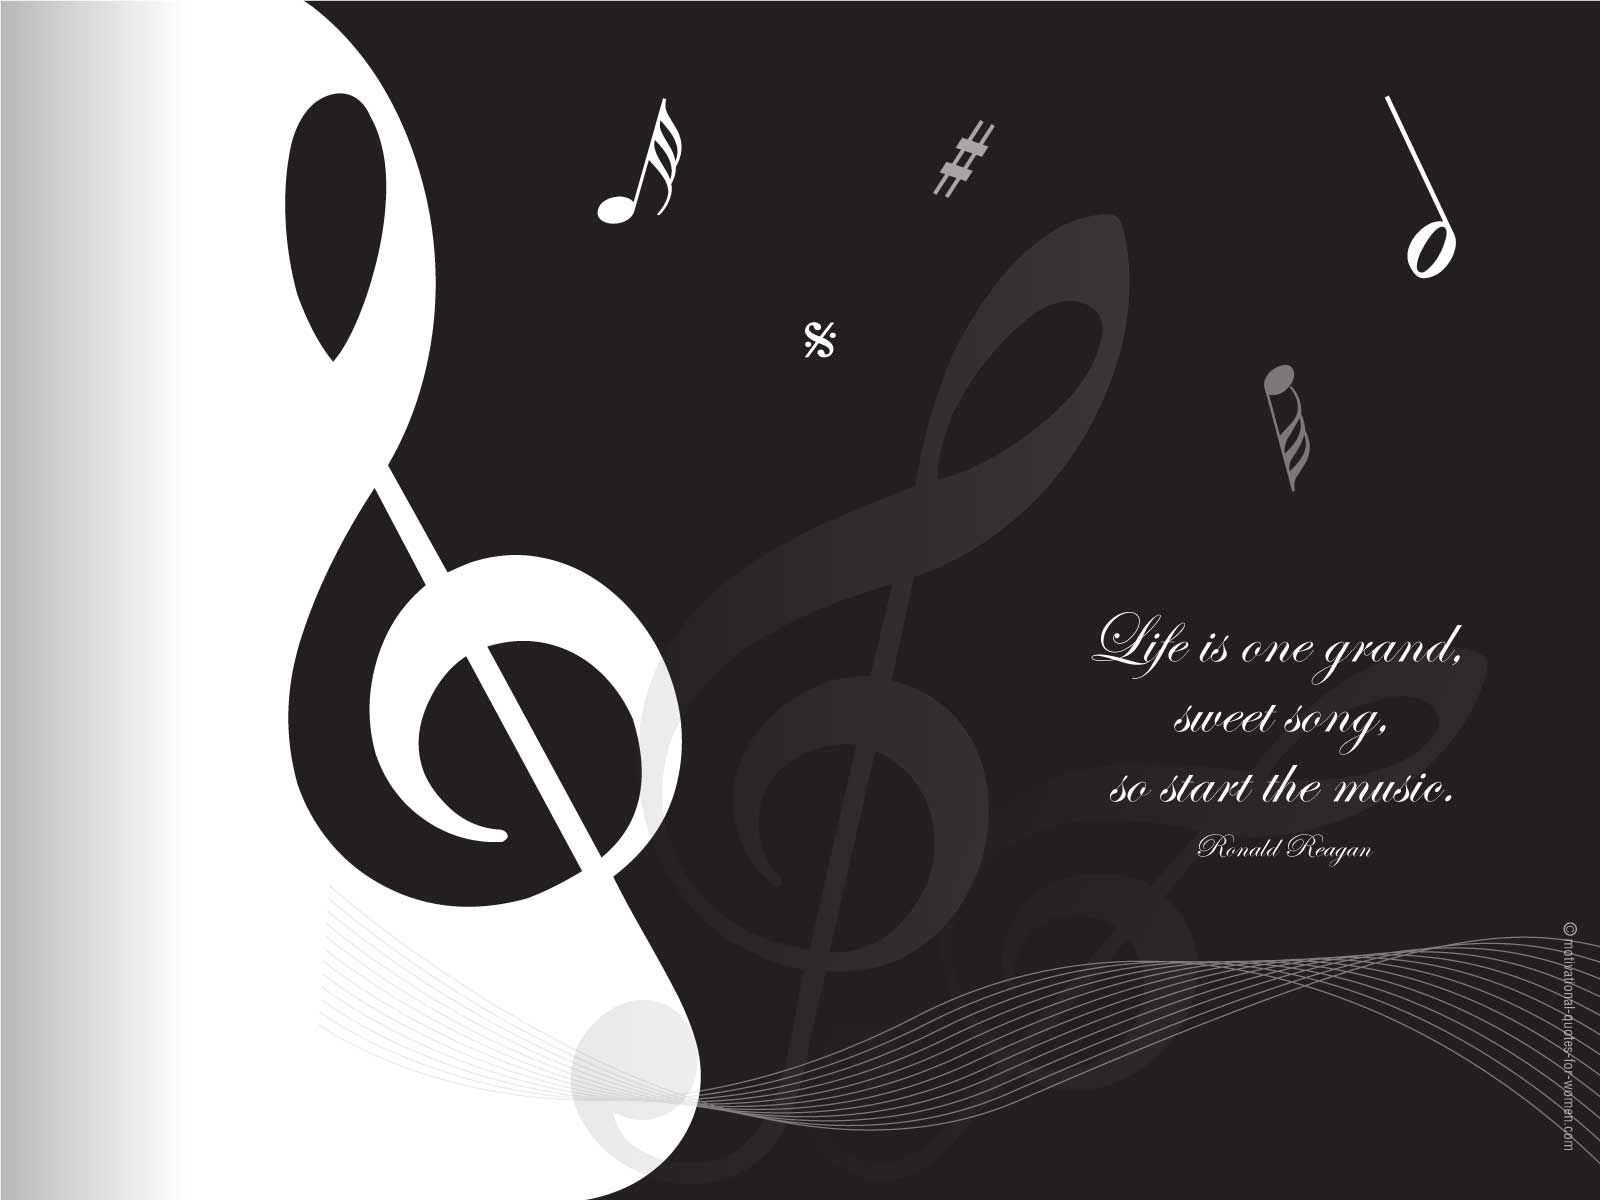 Heart Touching Quotes On Music - HD Wallpaper